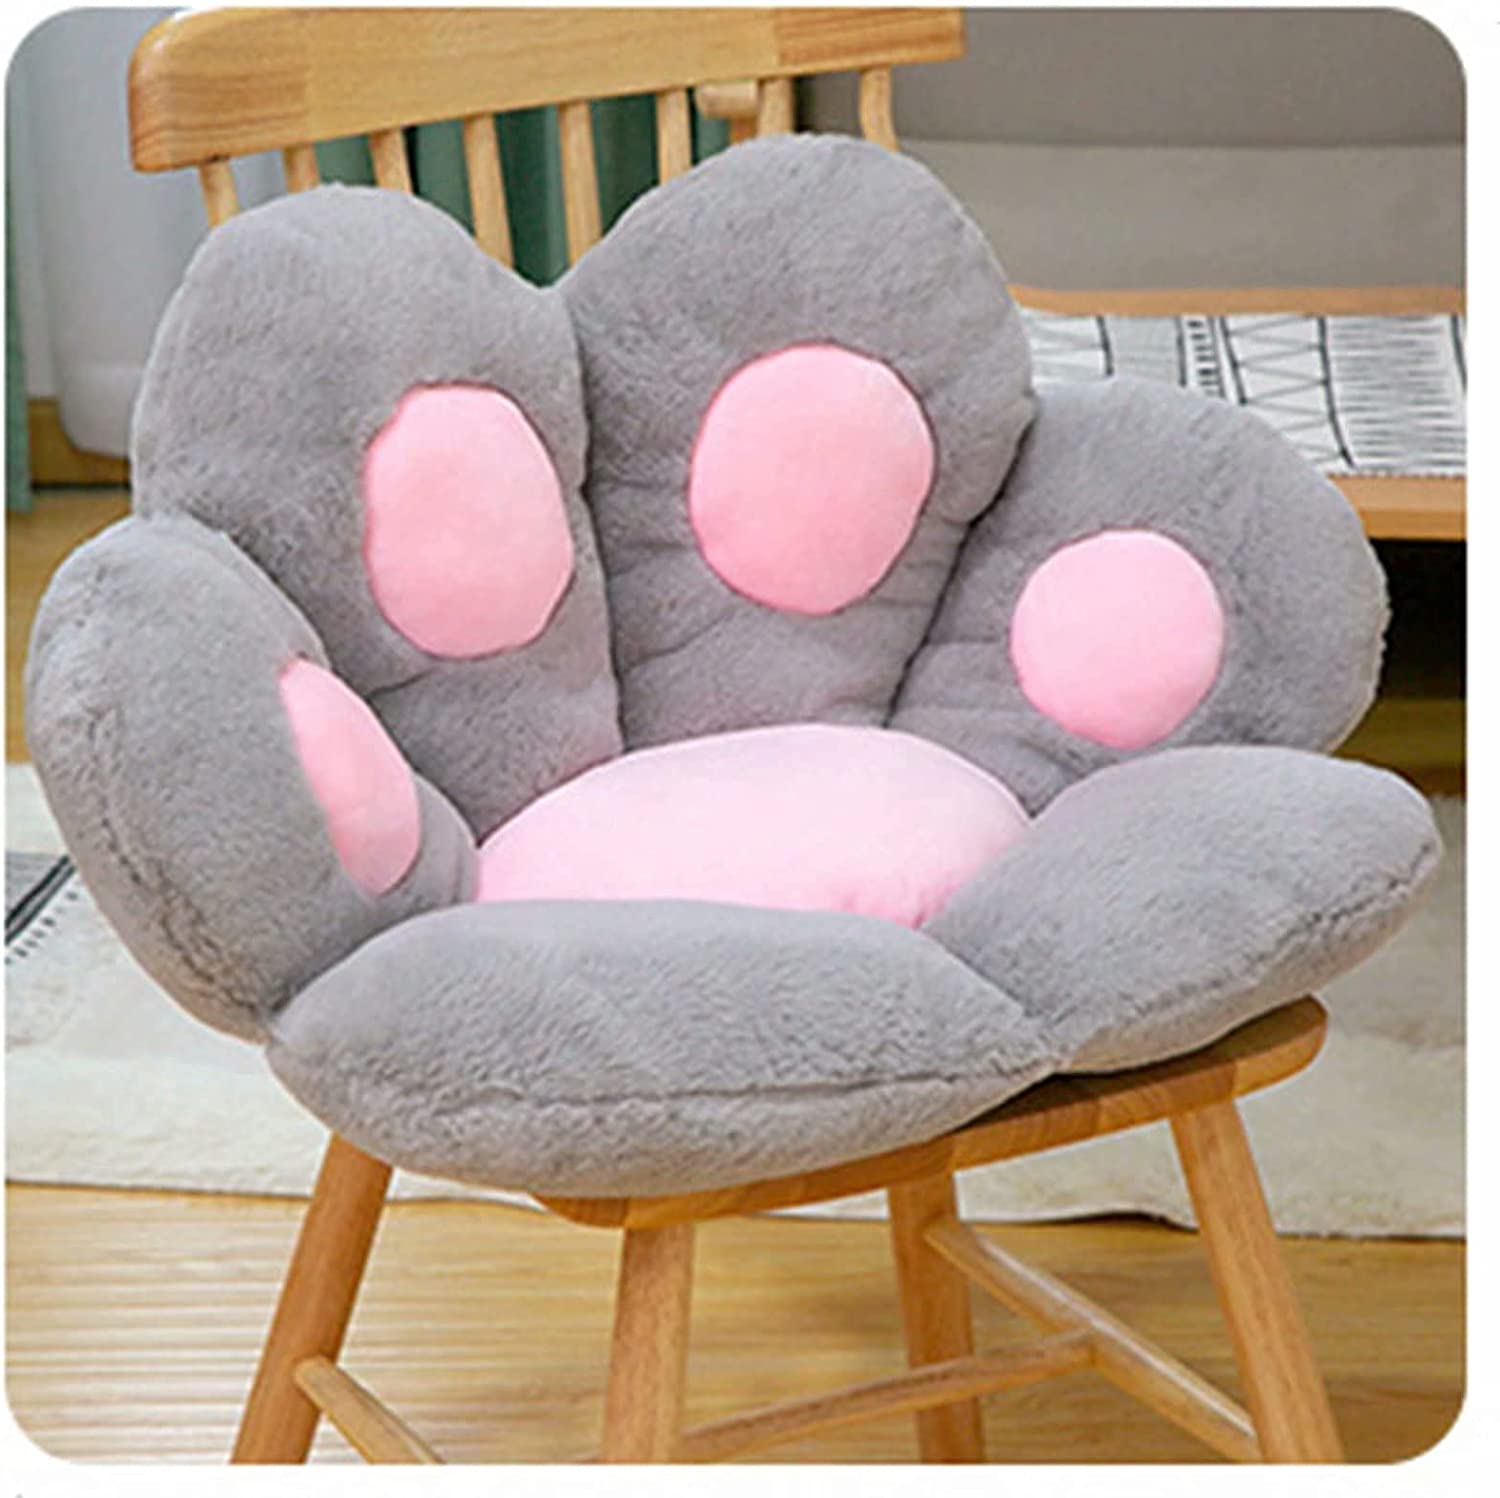 Cute Cat Paw Shaped Ranking TOP1 Papasan Seat Safety and trust Plush Chair Cushion Pads Soft